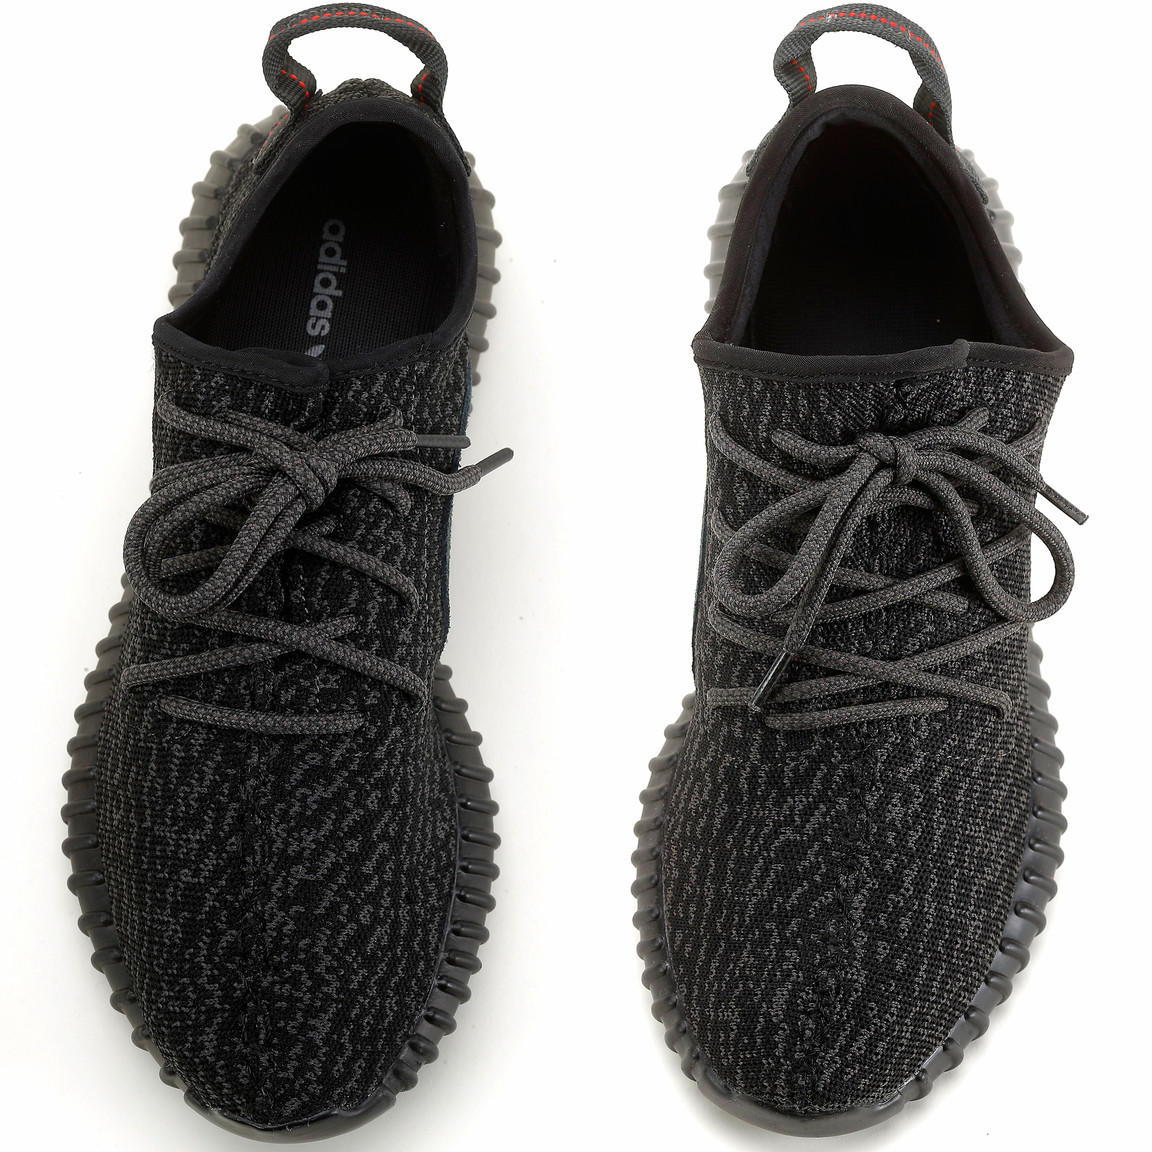 836e9008dd15f Counterfeit Yeezys and the booming sneaker black market - Los ...